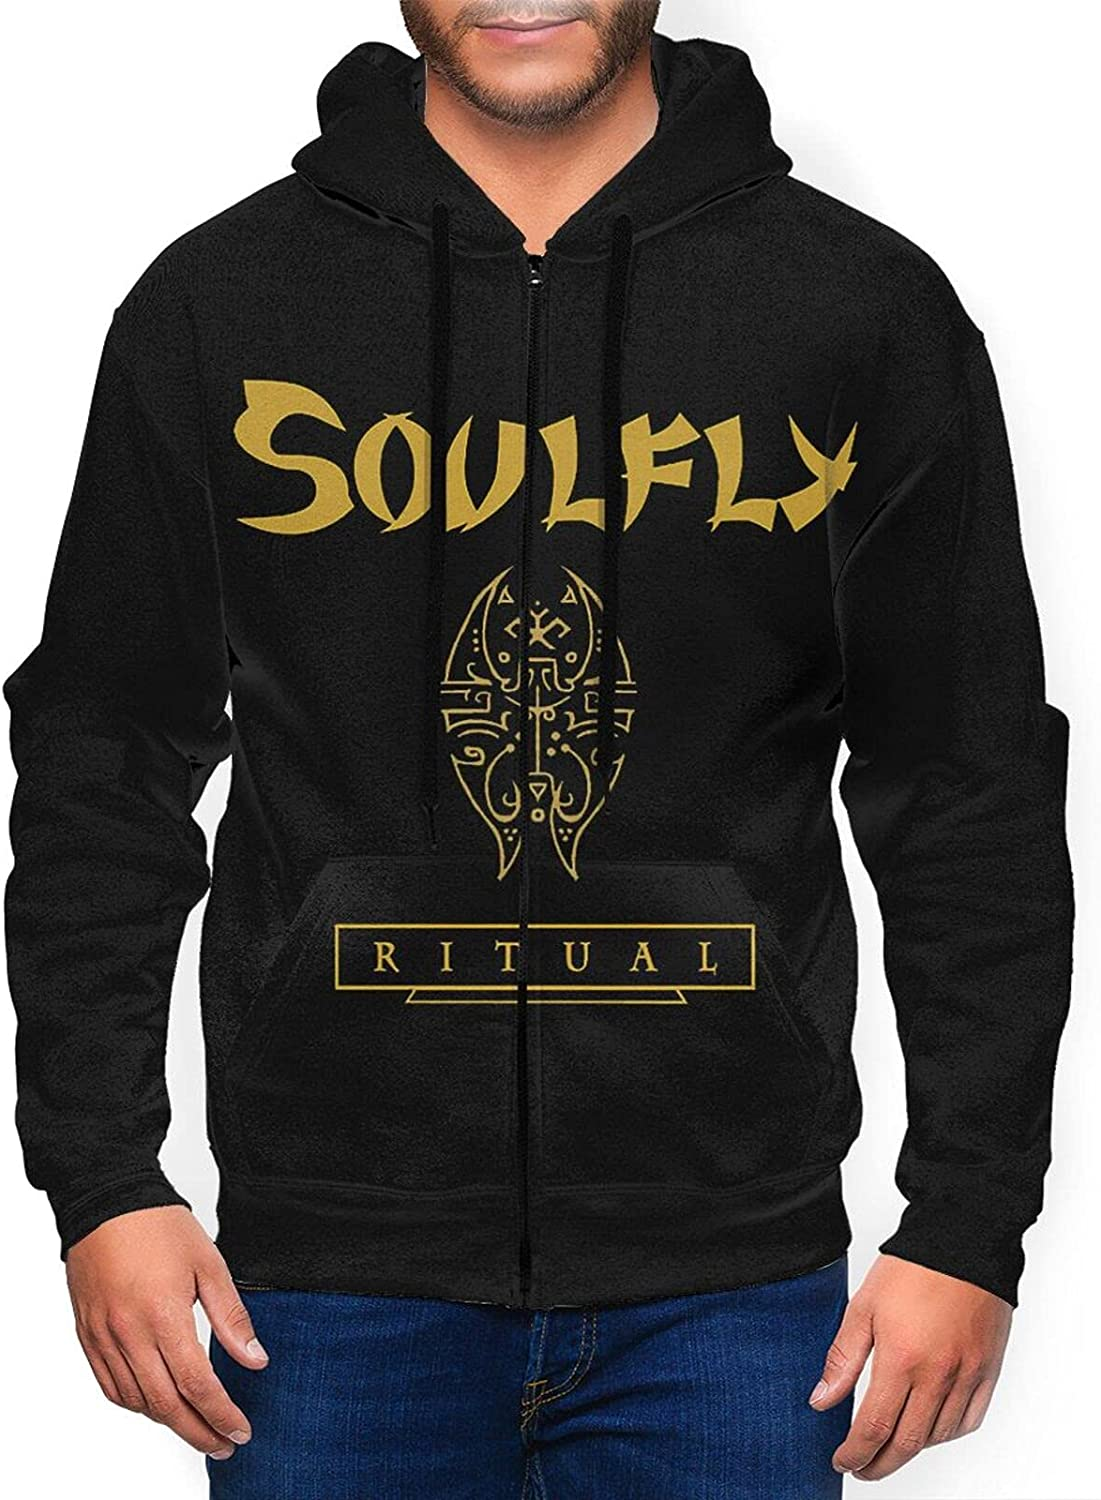 Soulfly Credence Men'S Hooded Zipper Shirt Coat Classic Casual Colorado Springs Mall Jacket